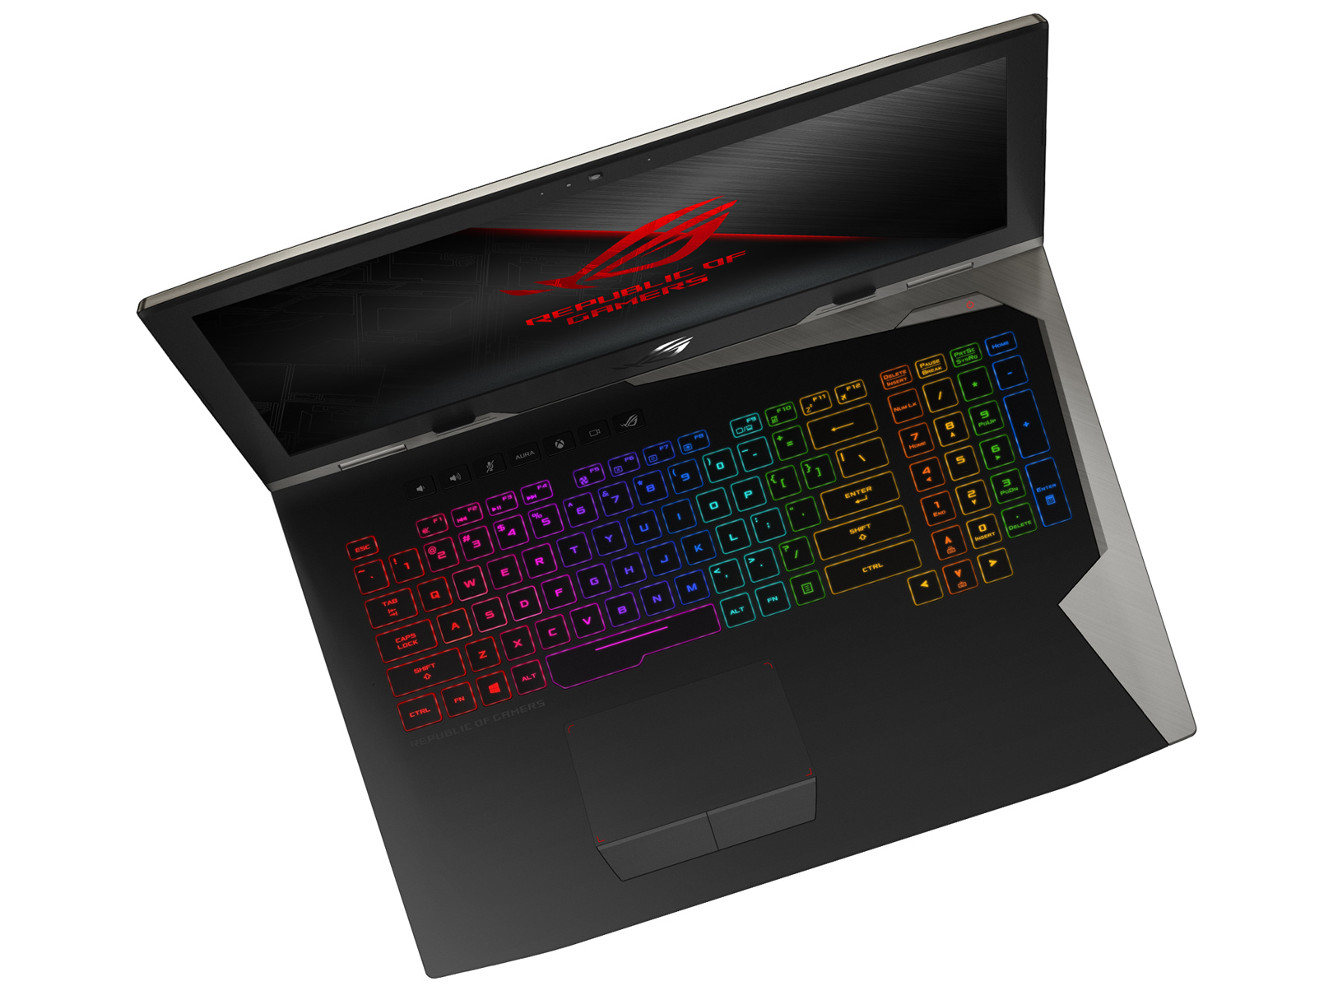 ASUS Republic of Gamers ROG G703 con Aura Sync